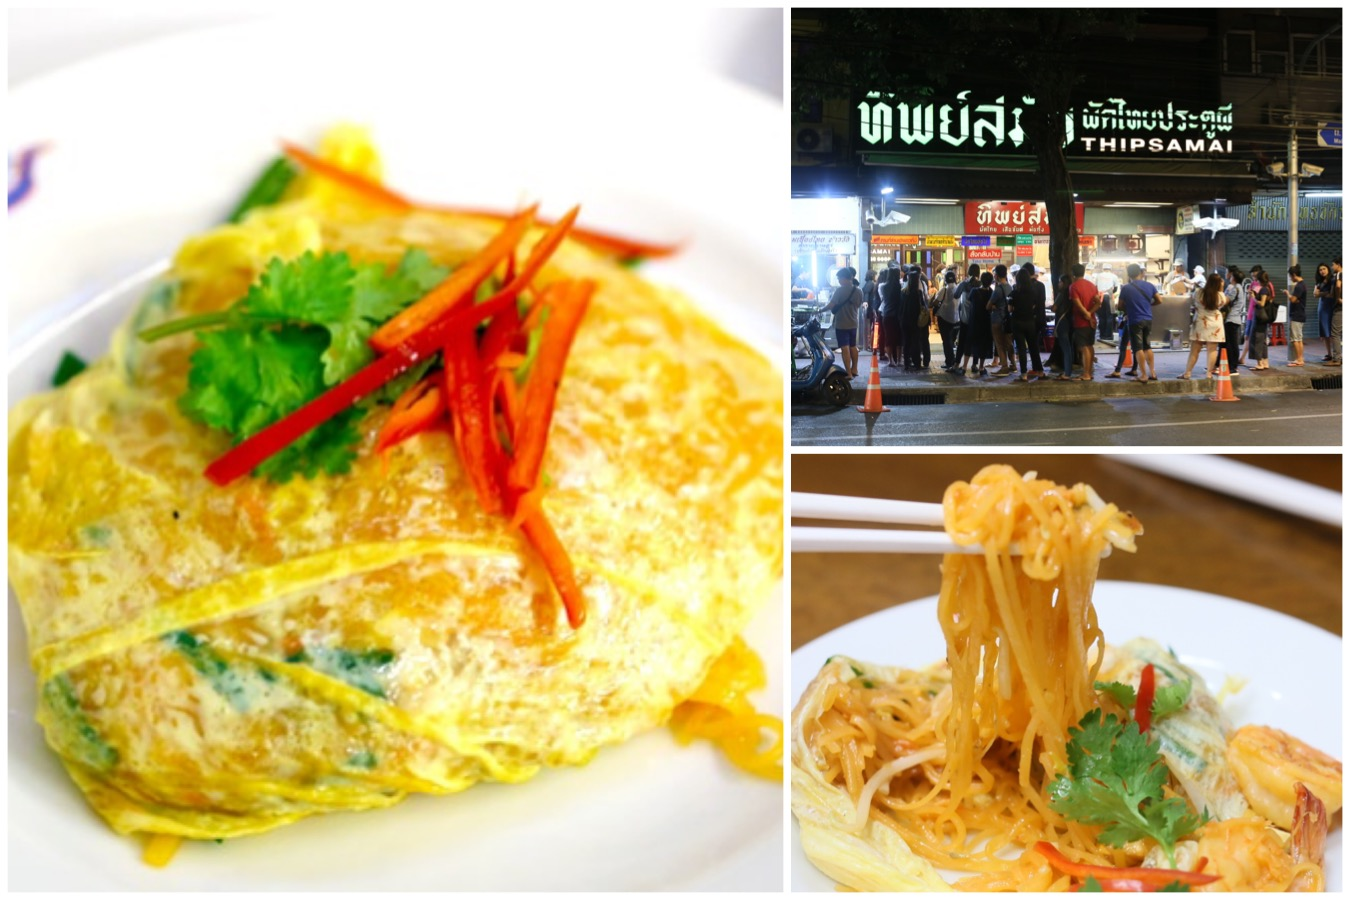 Thip Samai Pad Thai - Best Pad Thai In Bangkok? Popular Eatery Near Chinatown Has Long, Long Queues